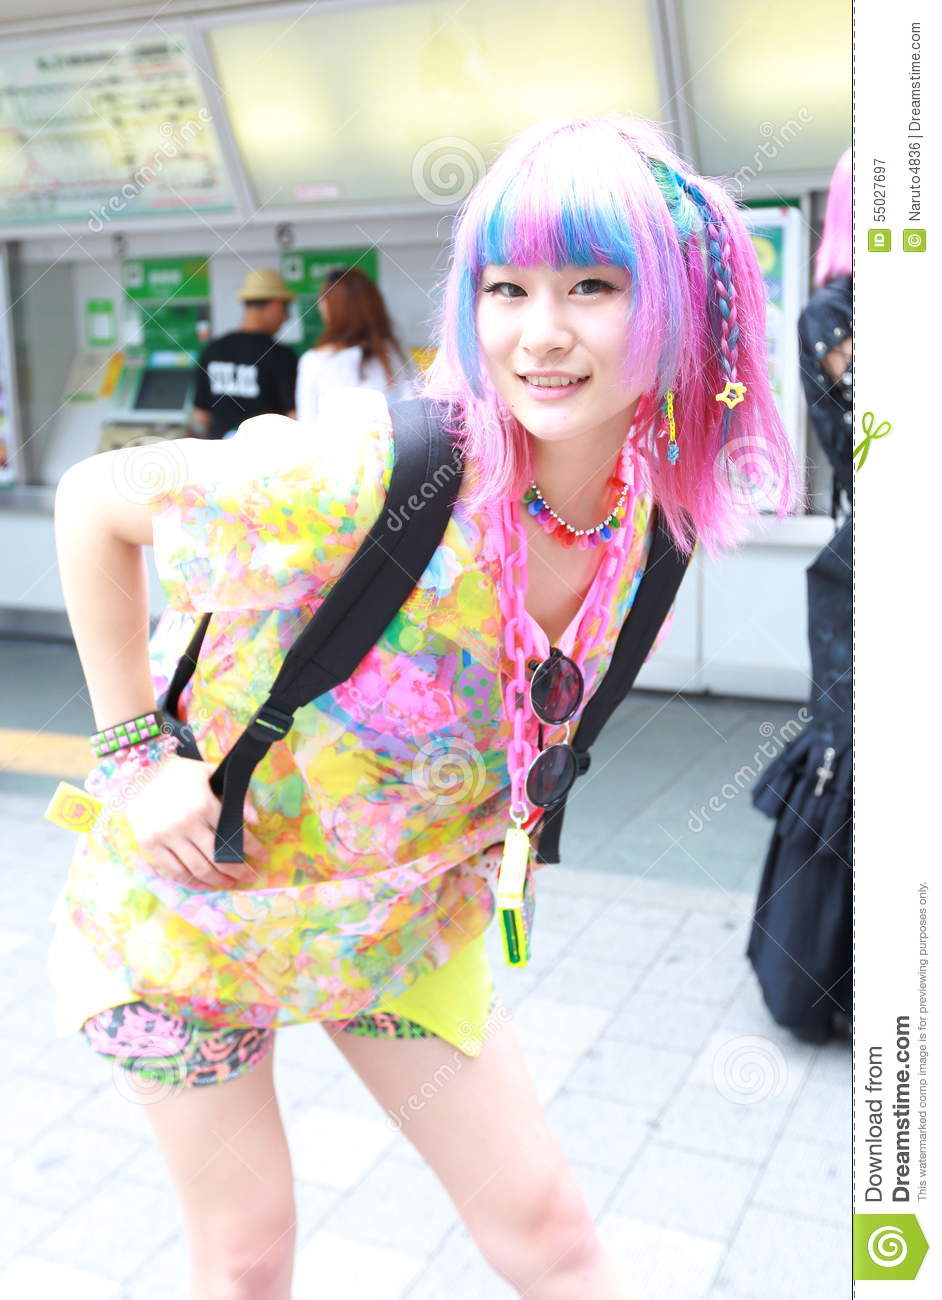 Teen fashion in japan Best Indian Blogs: List of Most Popular Bloggers in India